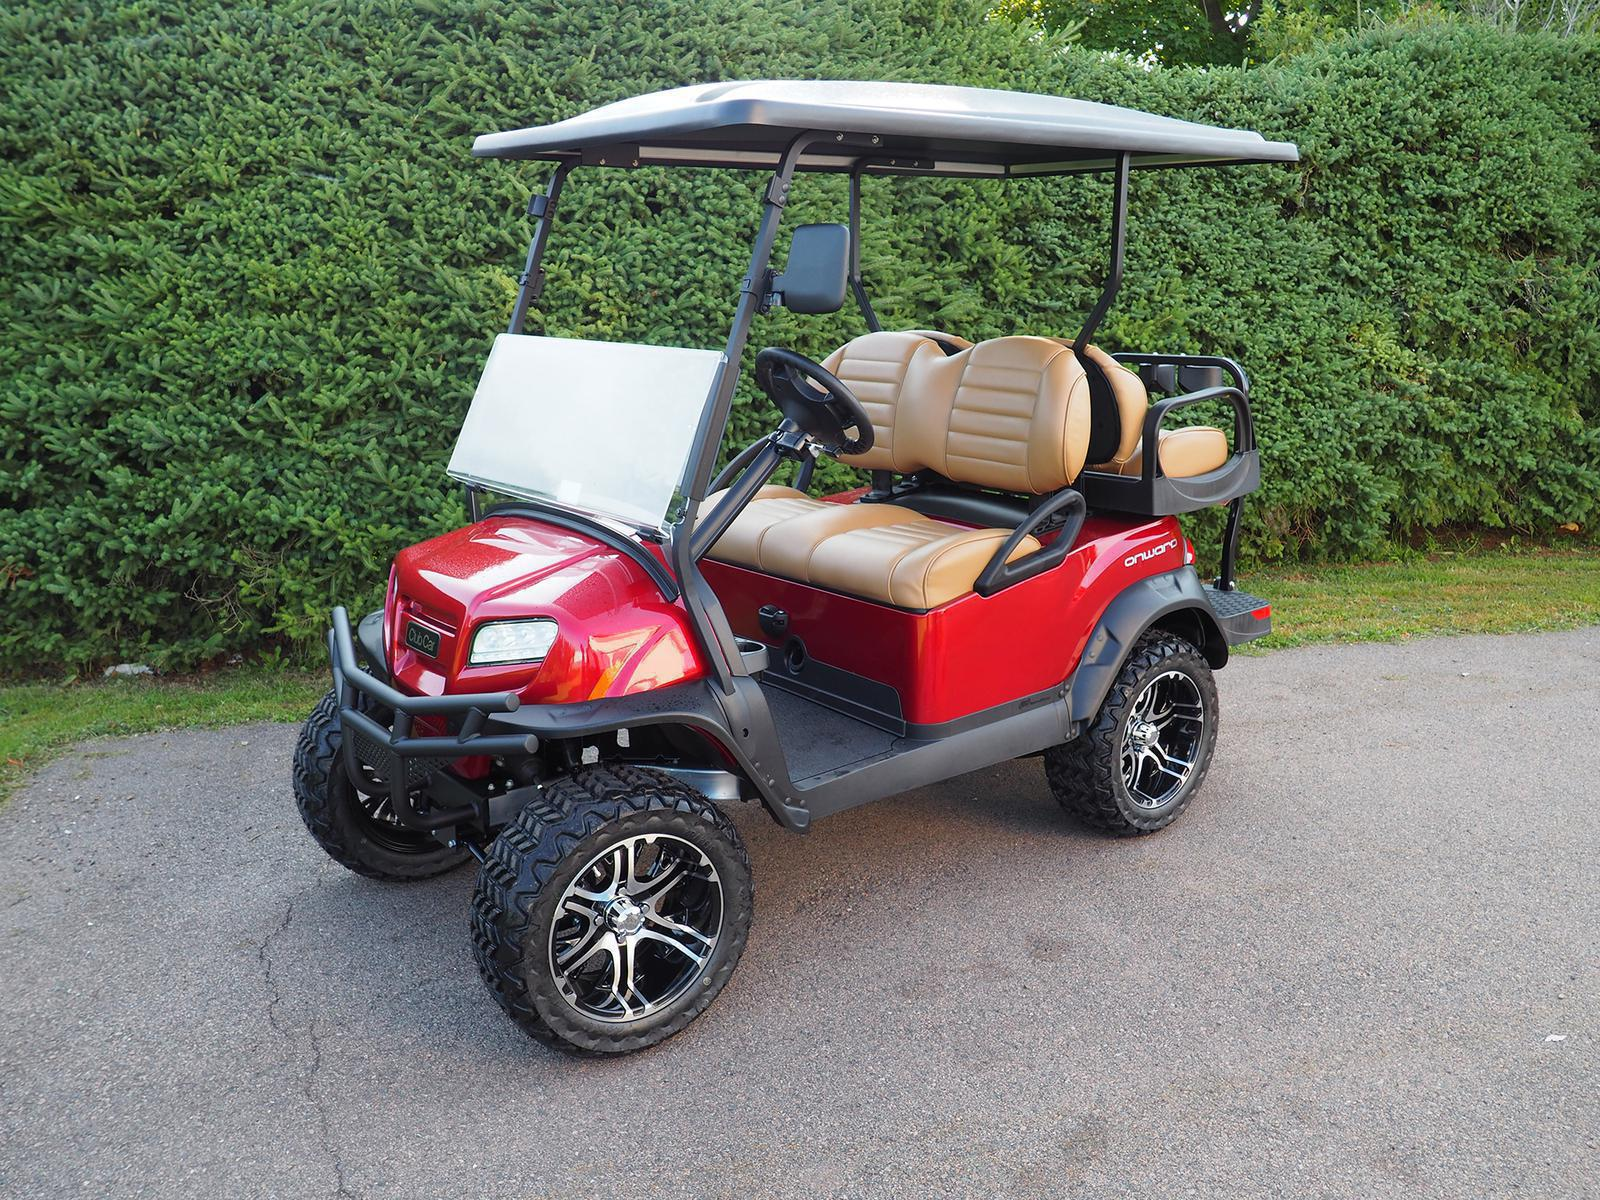 Inventory from BCS America, Club Car and NDS Veseys